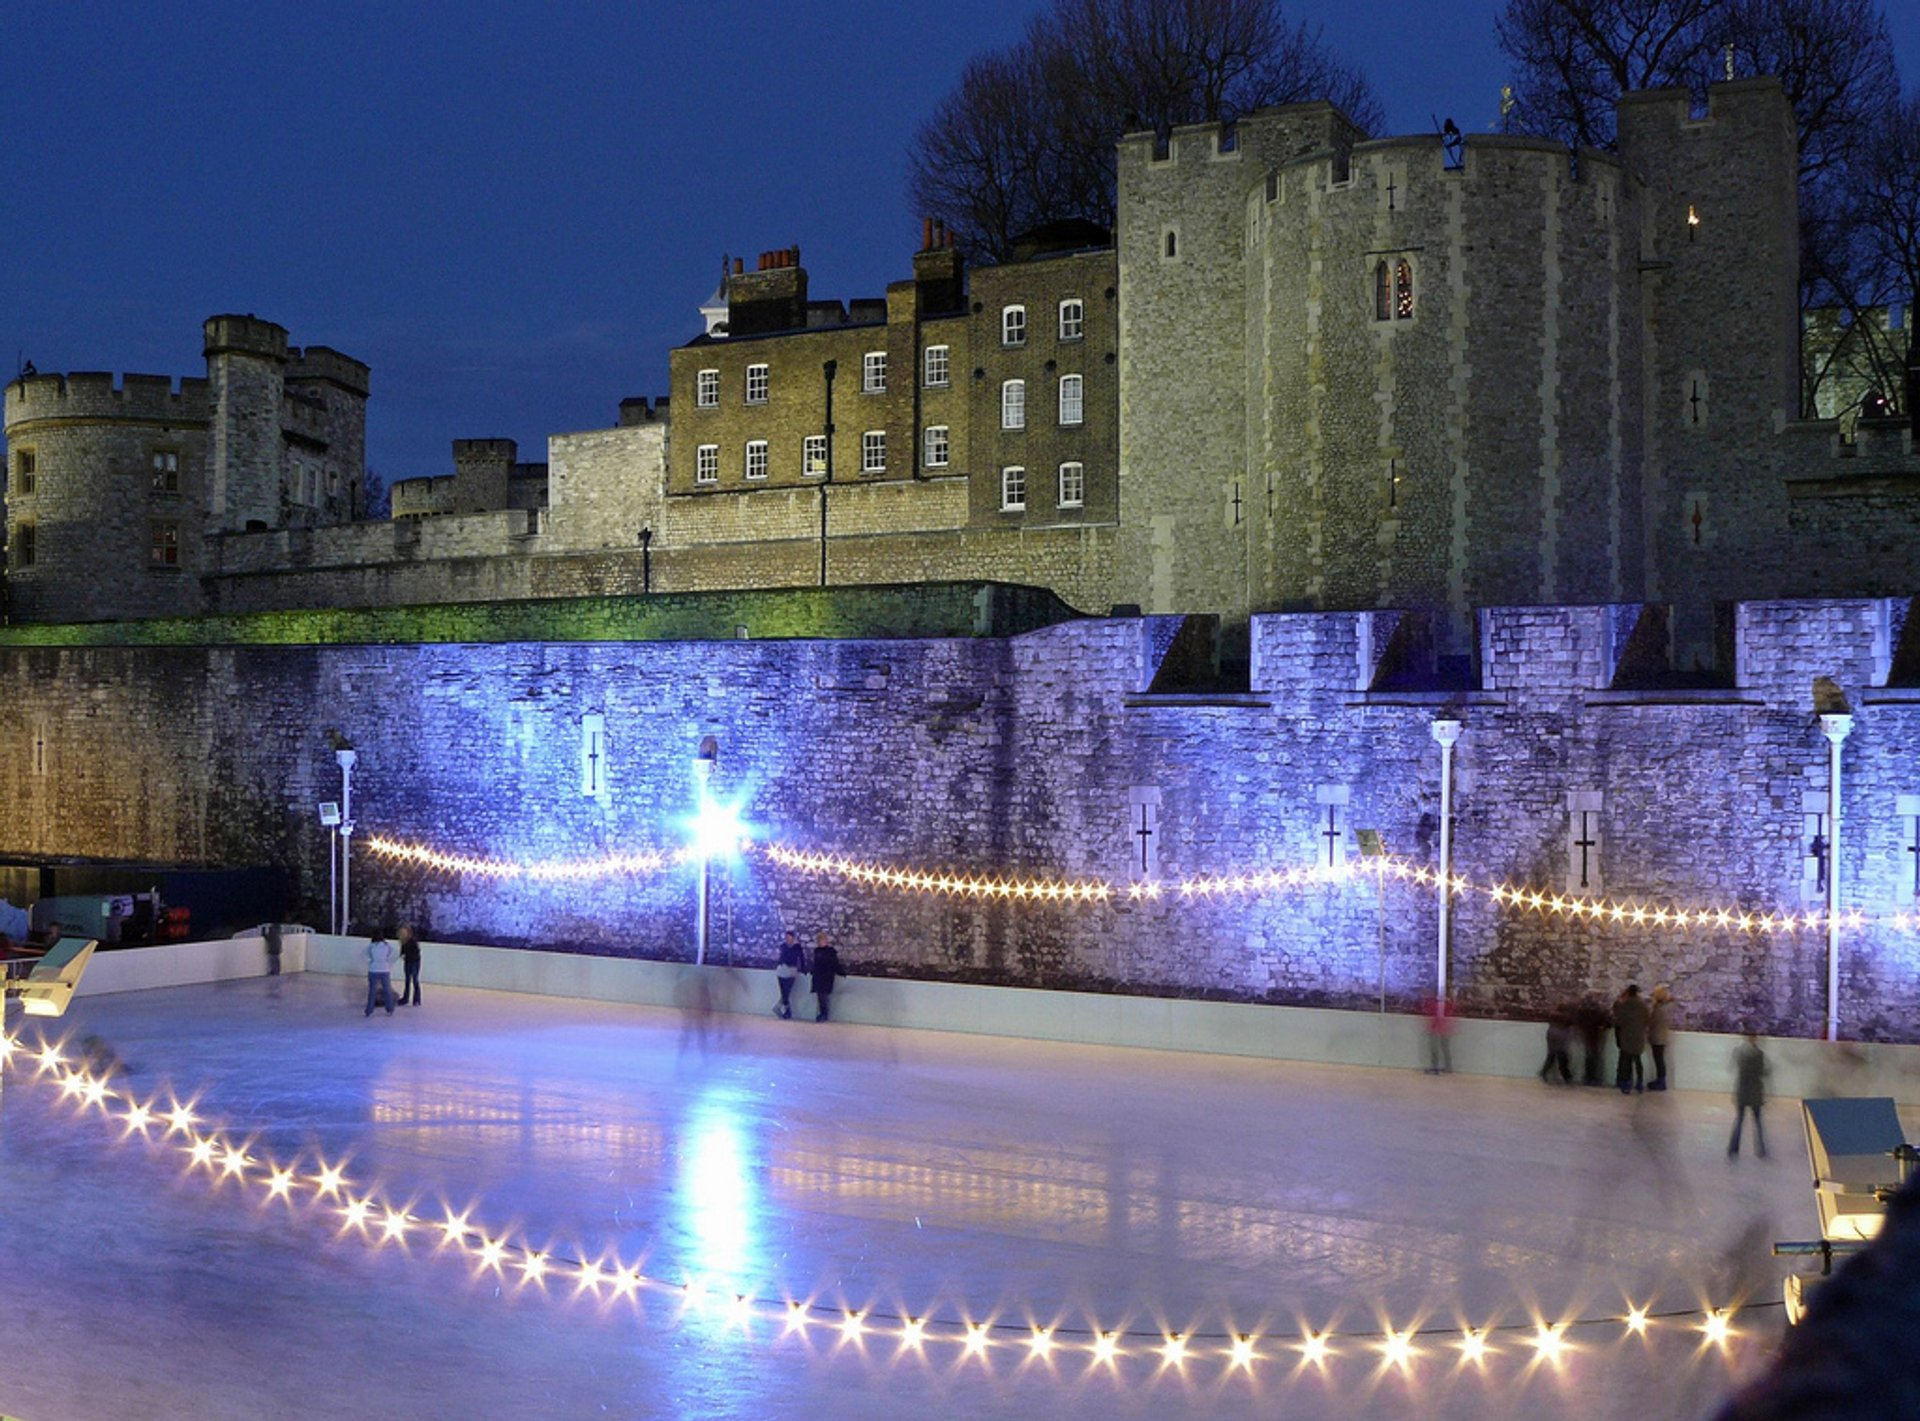 The Tower of London Ice Rink 2020